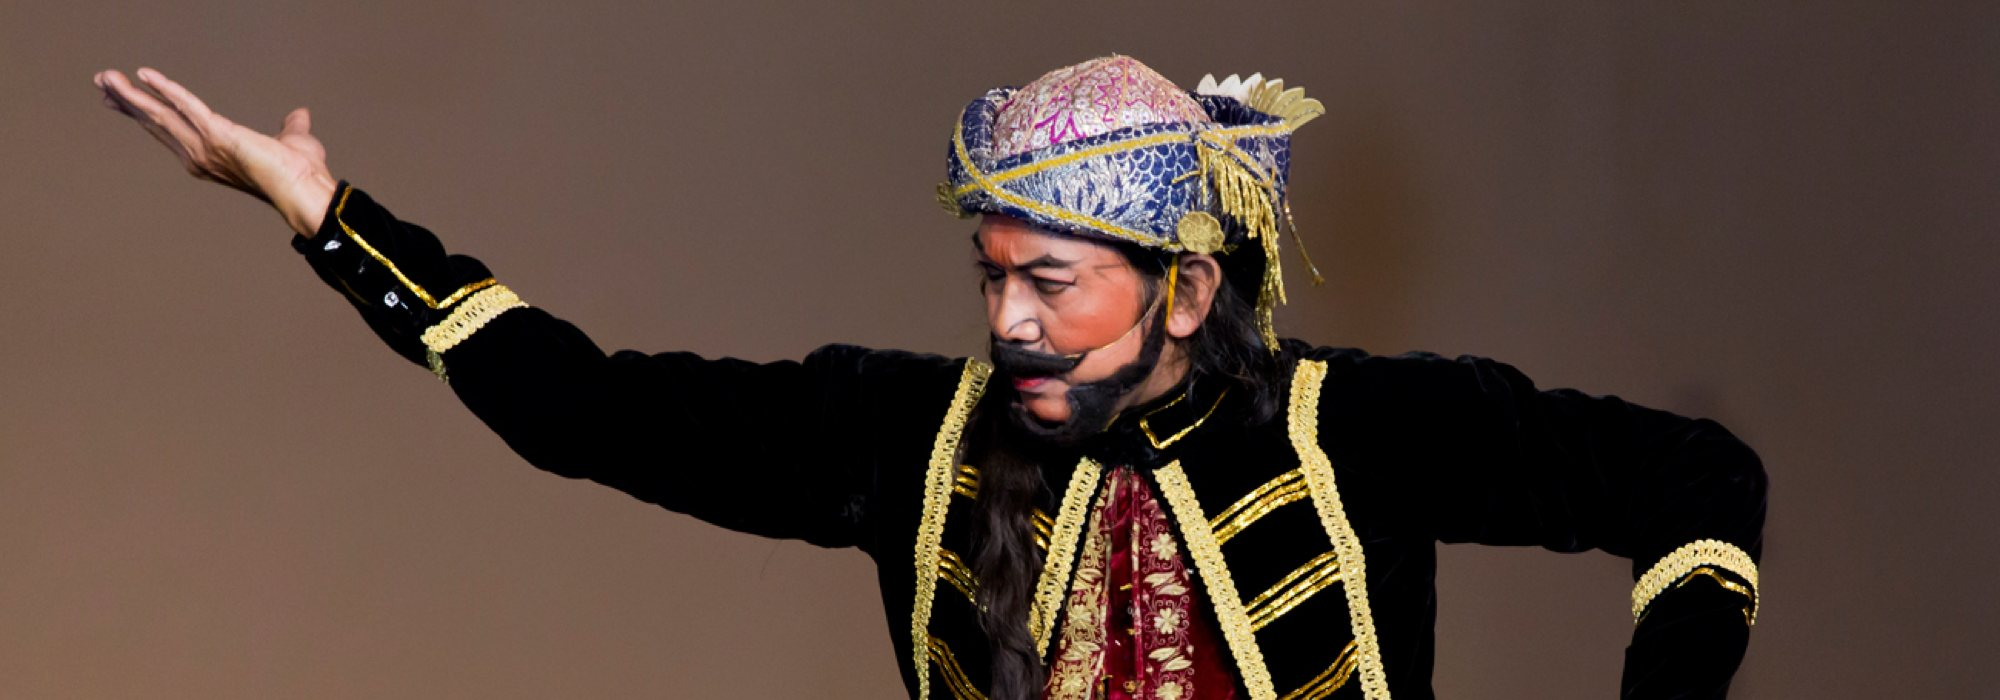 Performer in costume.